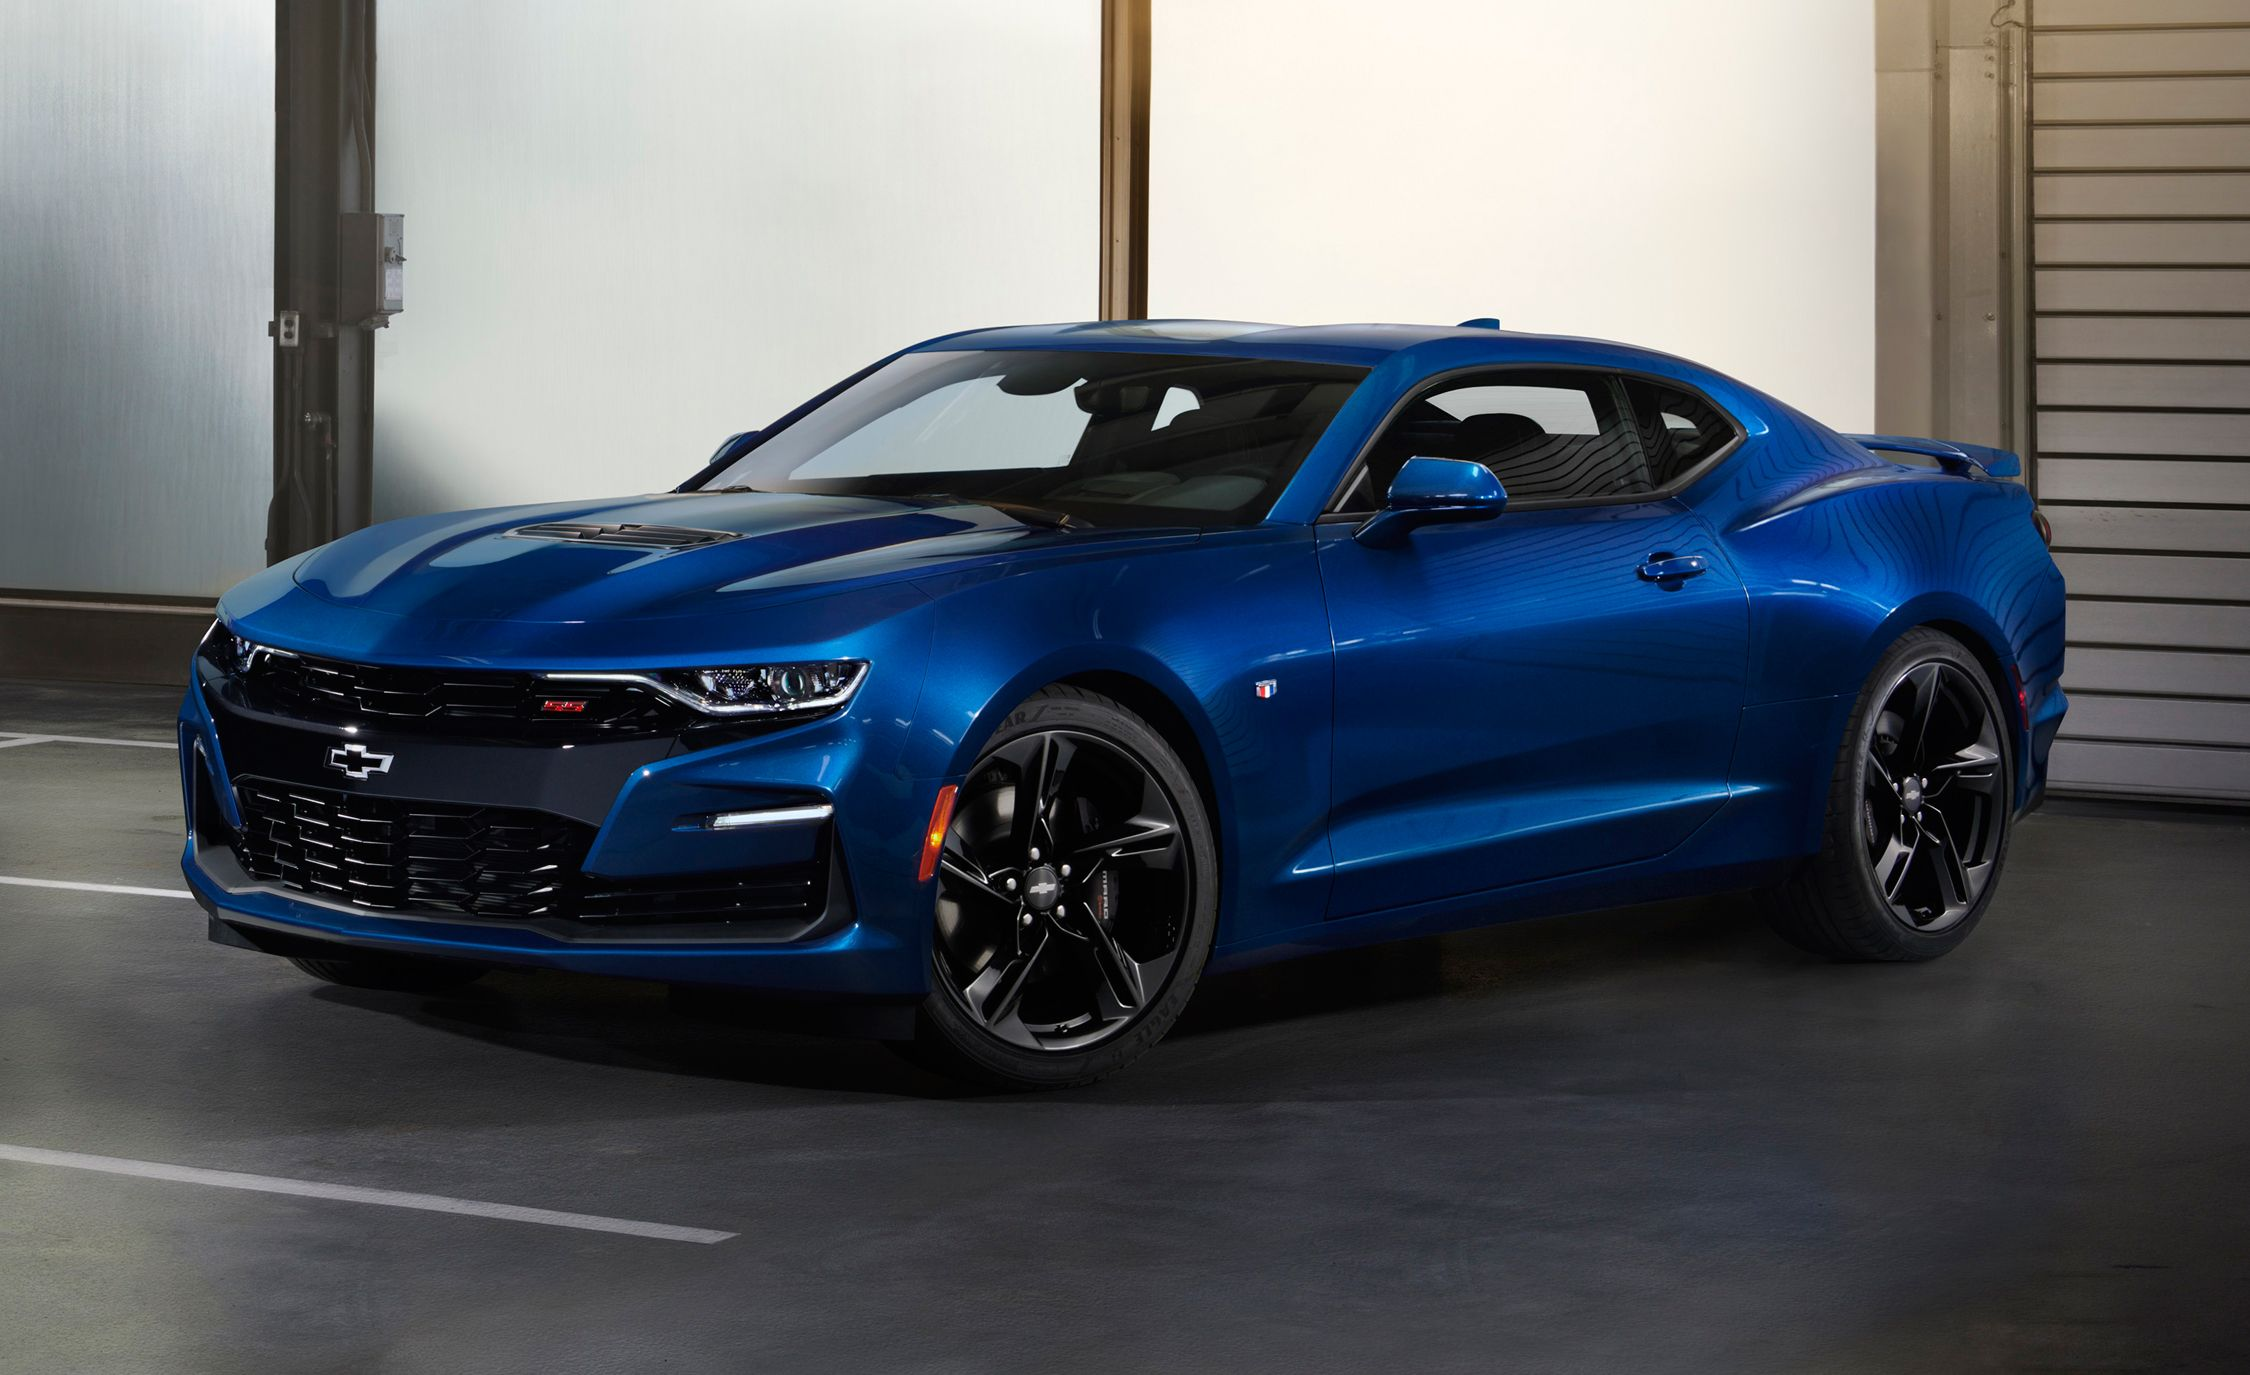 2019 Chevrolet Camaro This Refresh Is An Evolution Not A Revolution